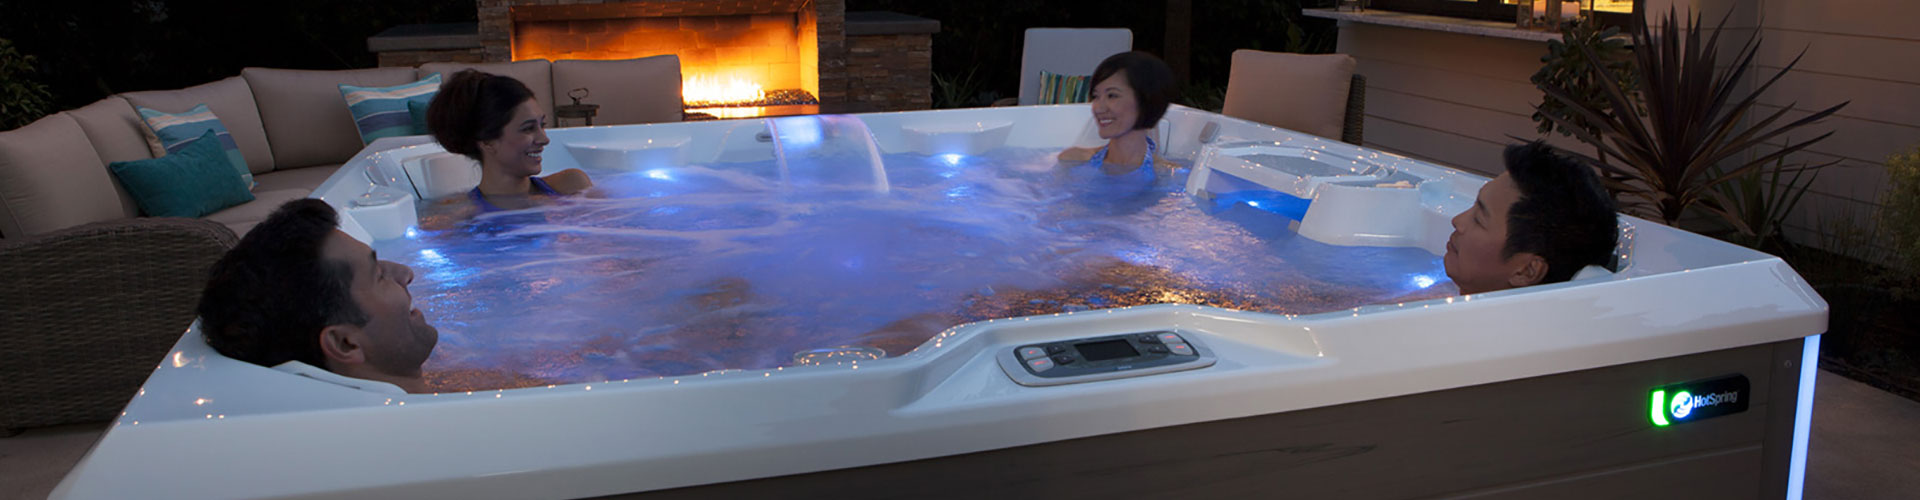 Cost vs Benefits of Owning a Hot Tub on Your Vacation Rental Property